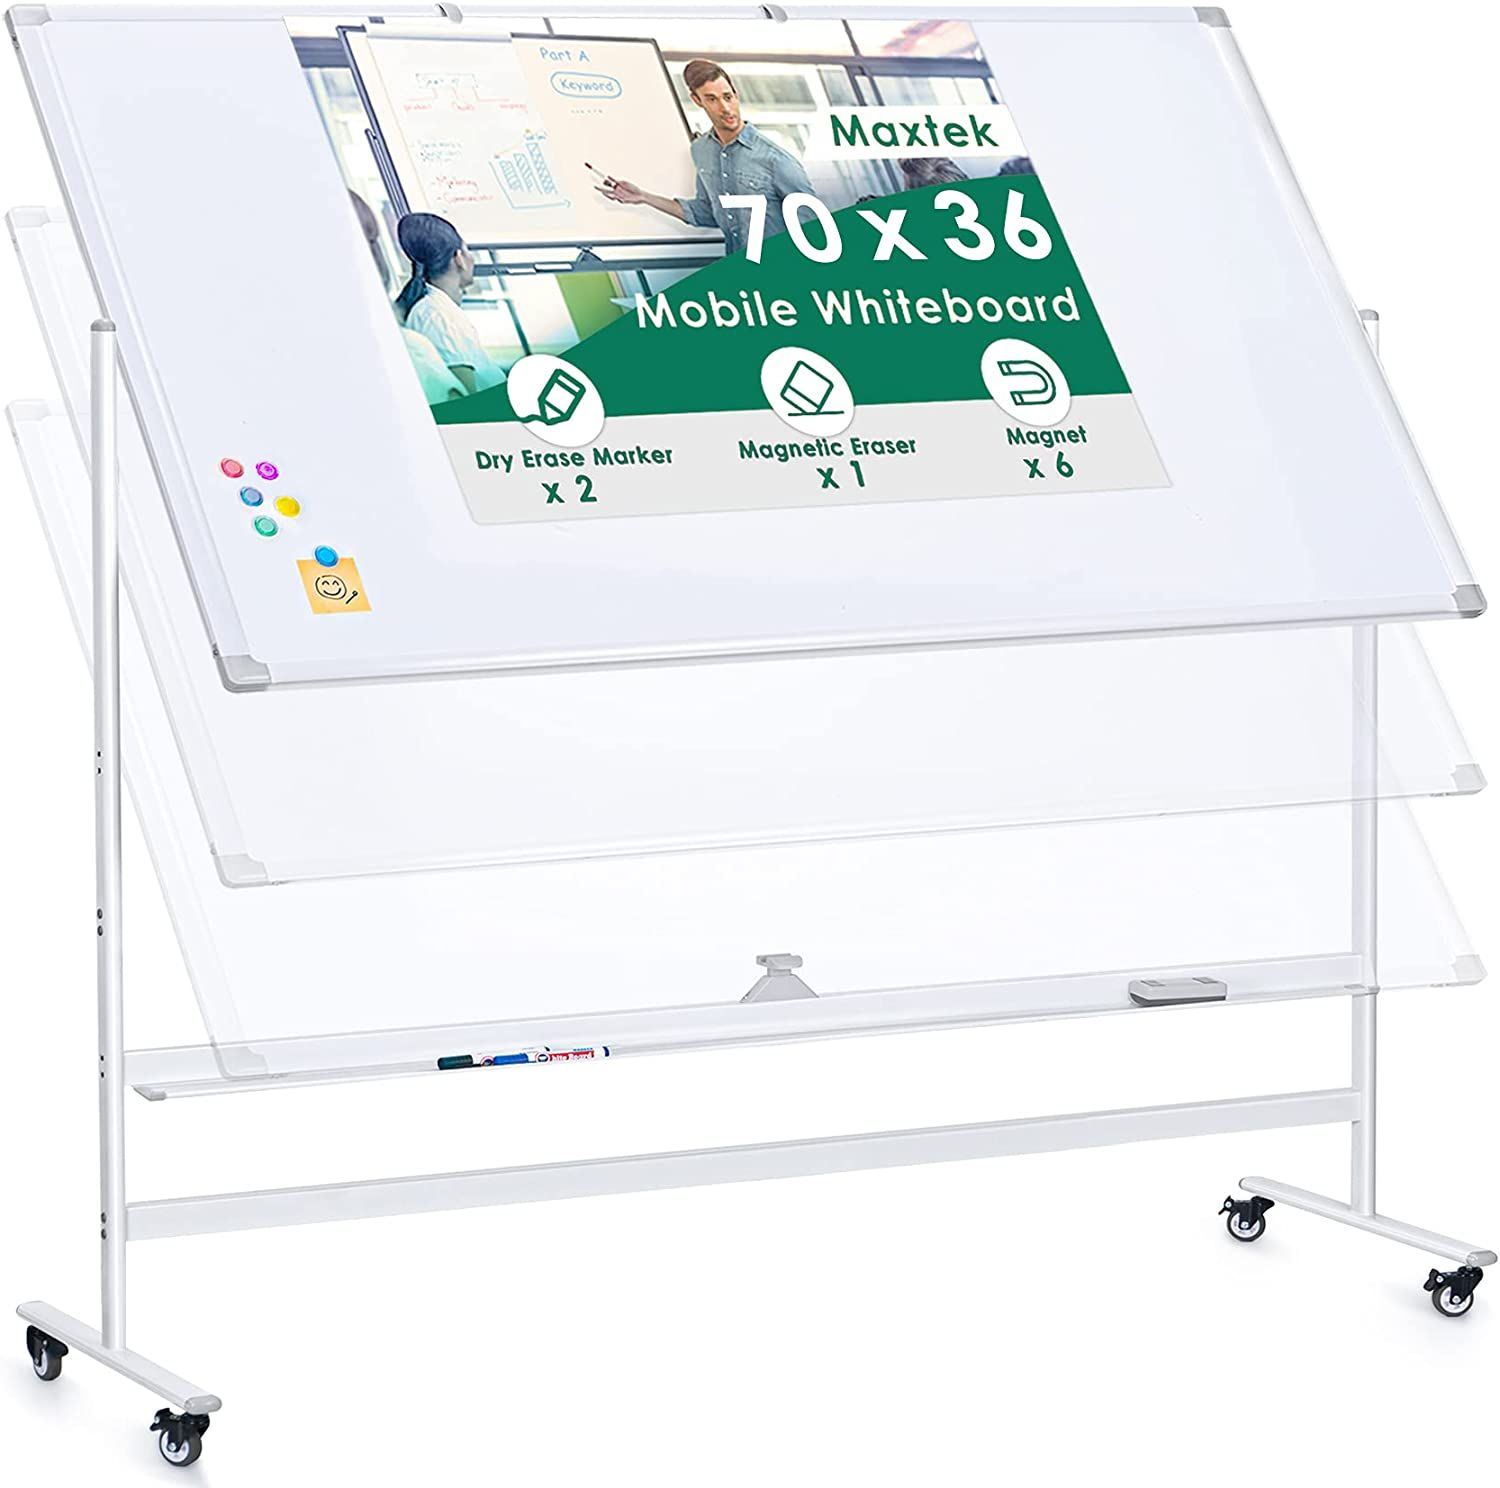 Large Rolling Whiteboard, Height Adjustable 70 x 36 inches Double Sided White Board Mobile Magnetic Dry Erase Board, Standing Whiteboard on Wheels for Home Office & Classroom, Accessories Included